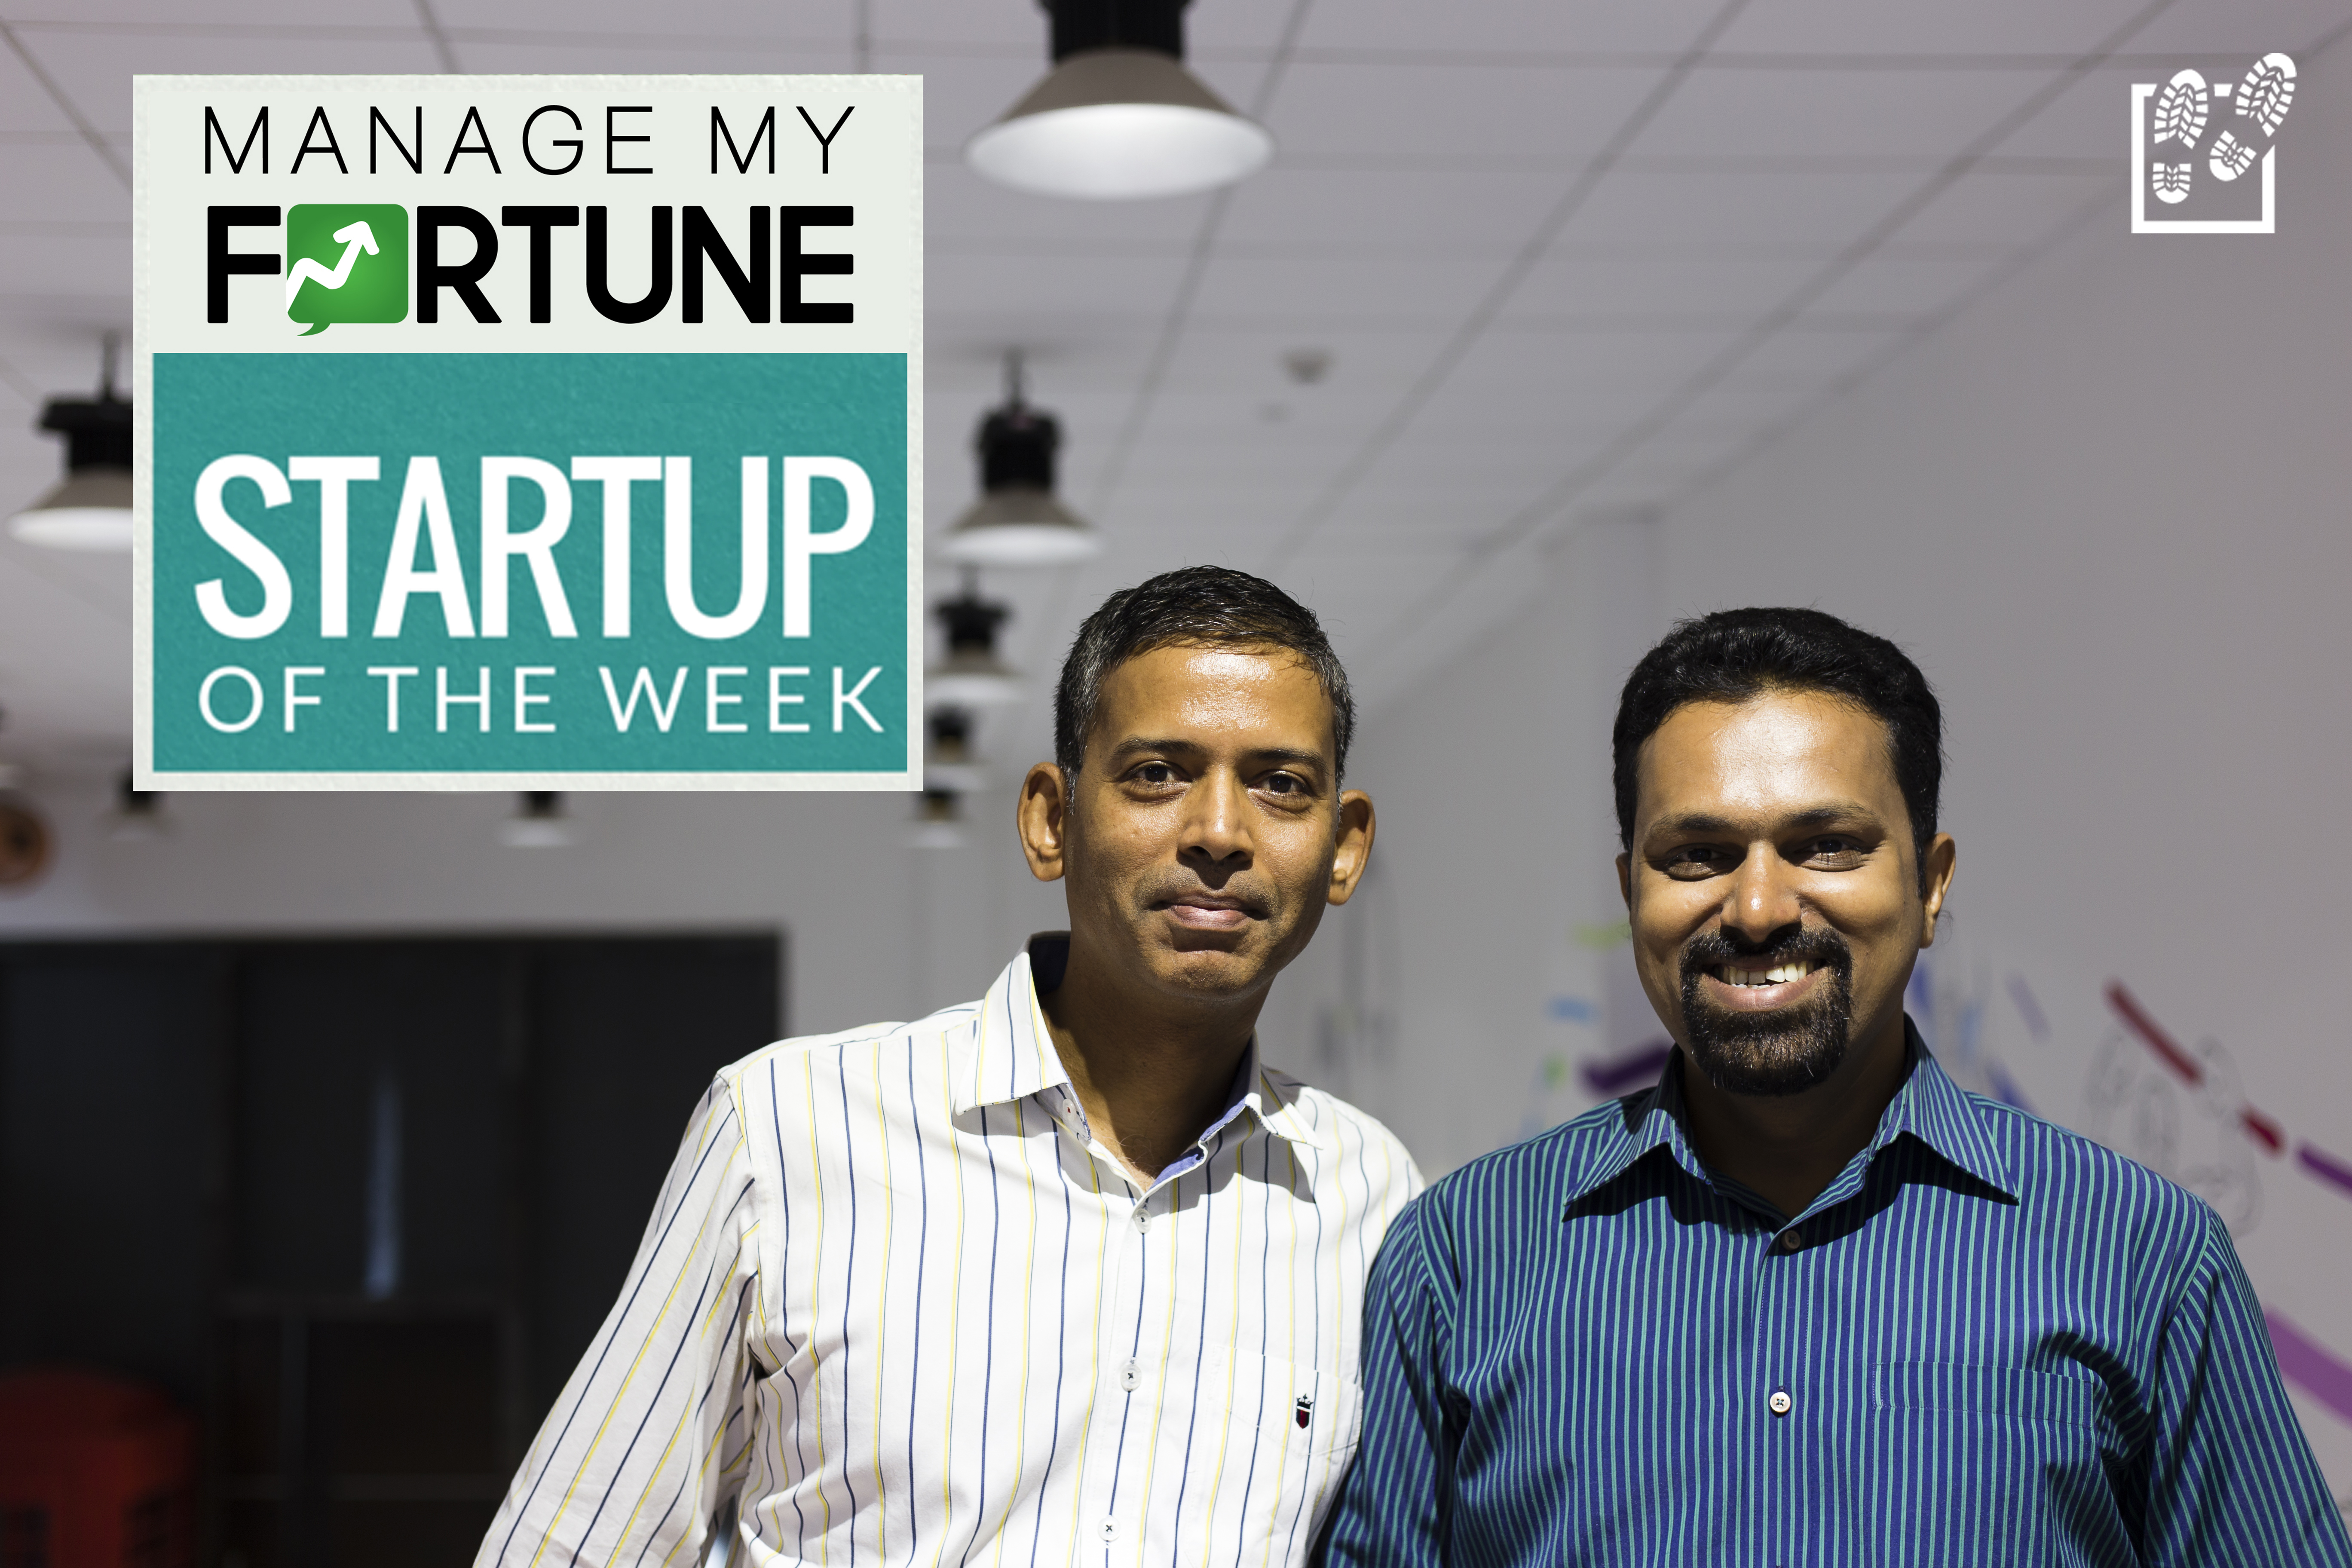 Startup Of the Week - SBC Sameer and Rahul